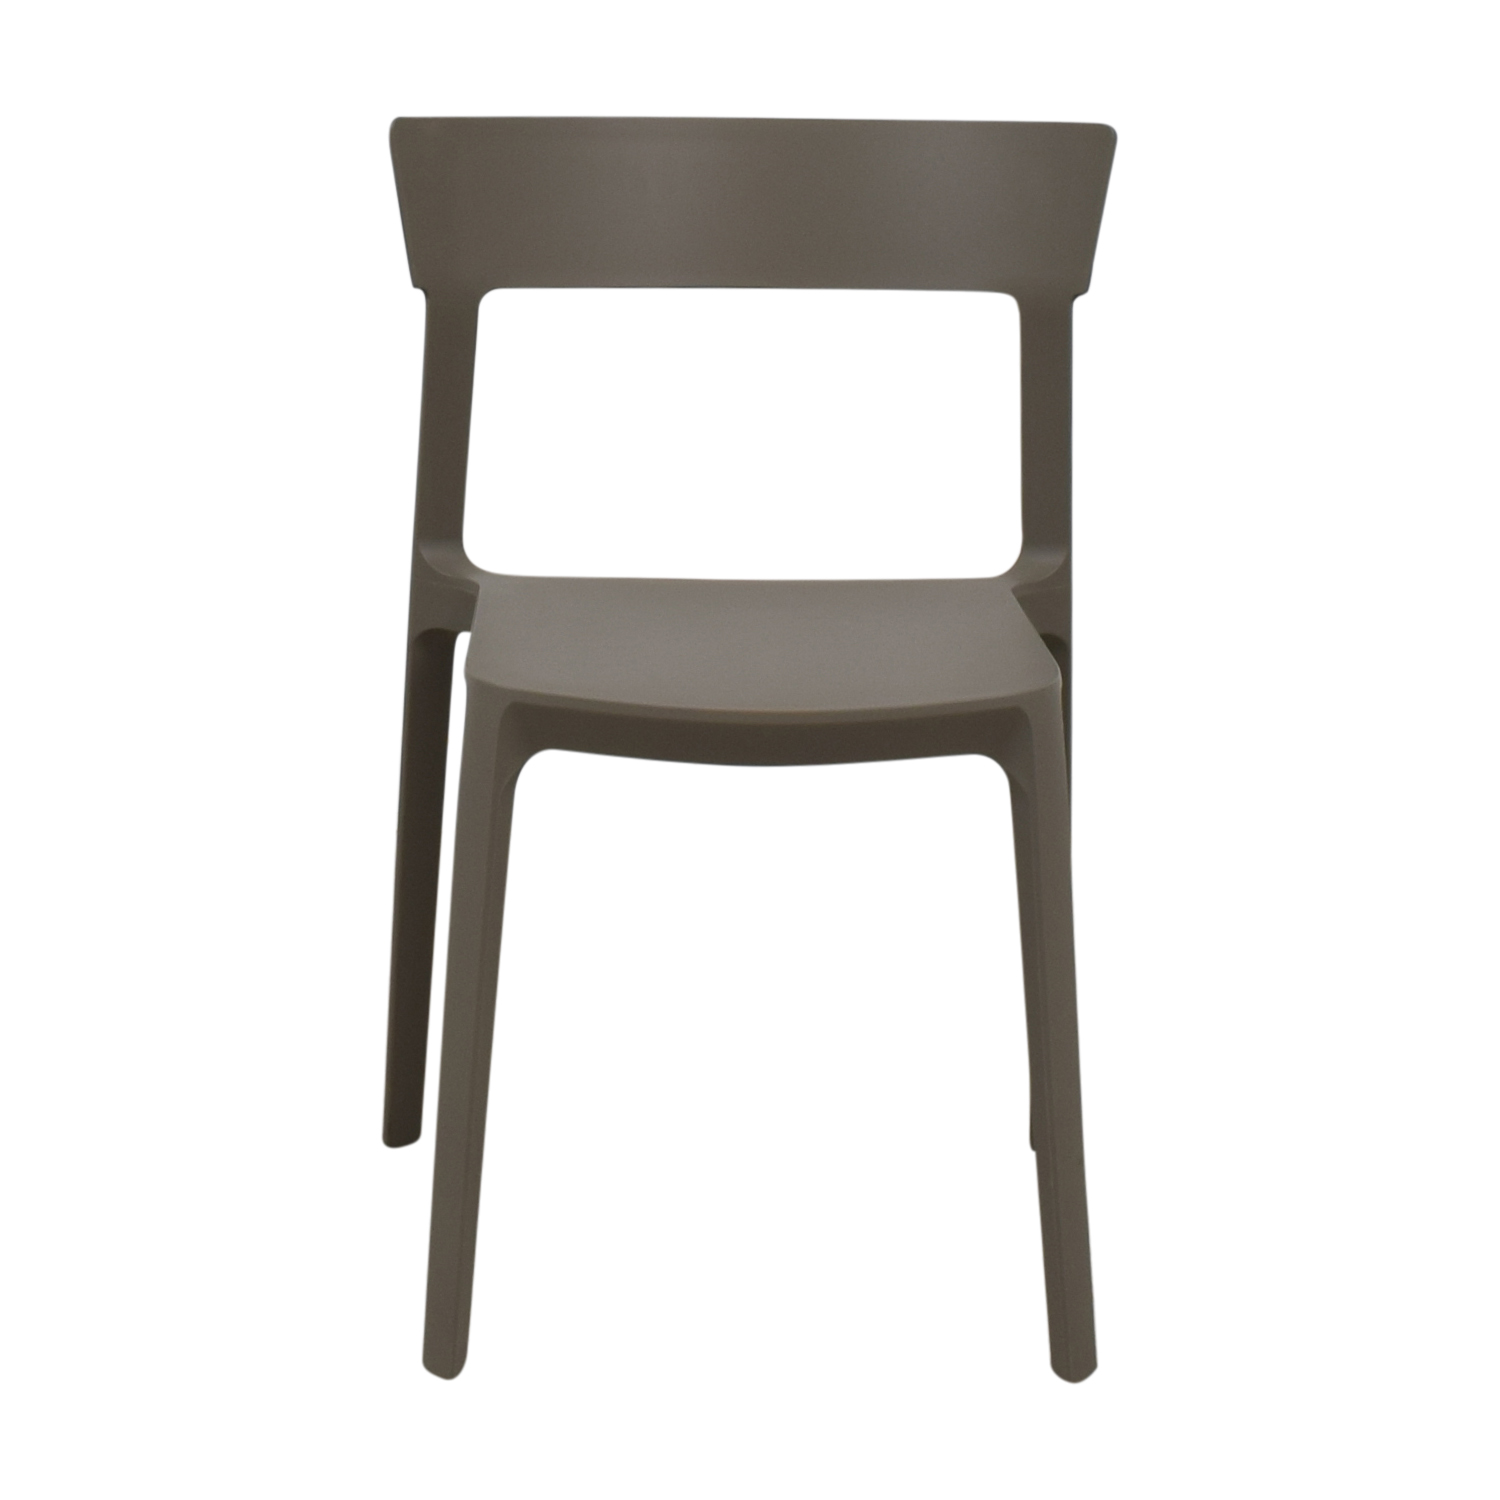 Calligaris Dining Chairs 90 Off Calligaris Calligaris Grey Skin Stacking Chair Chairs